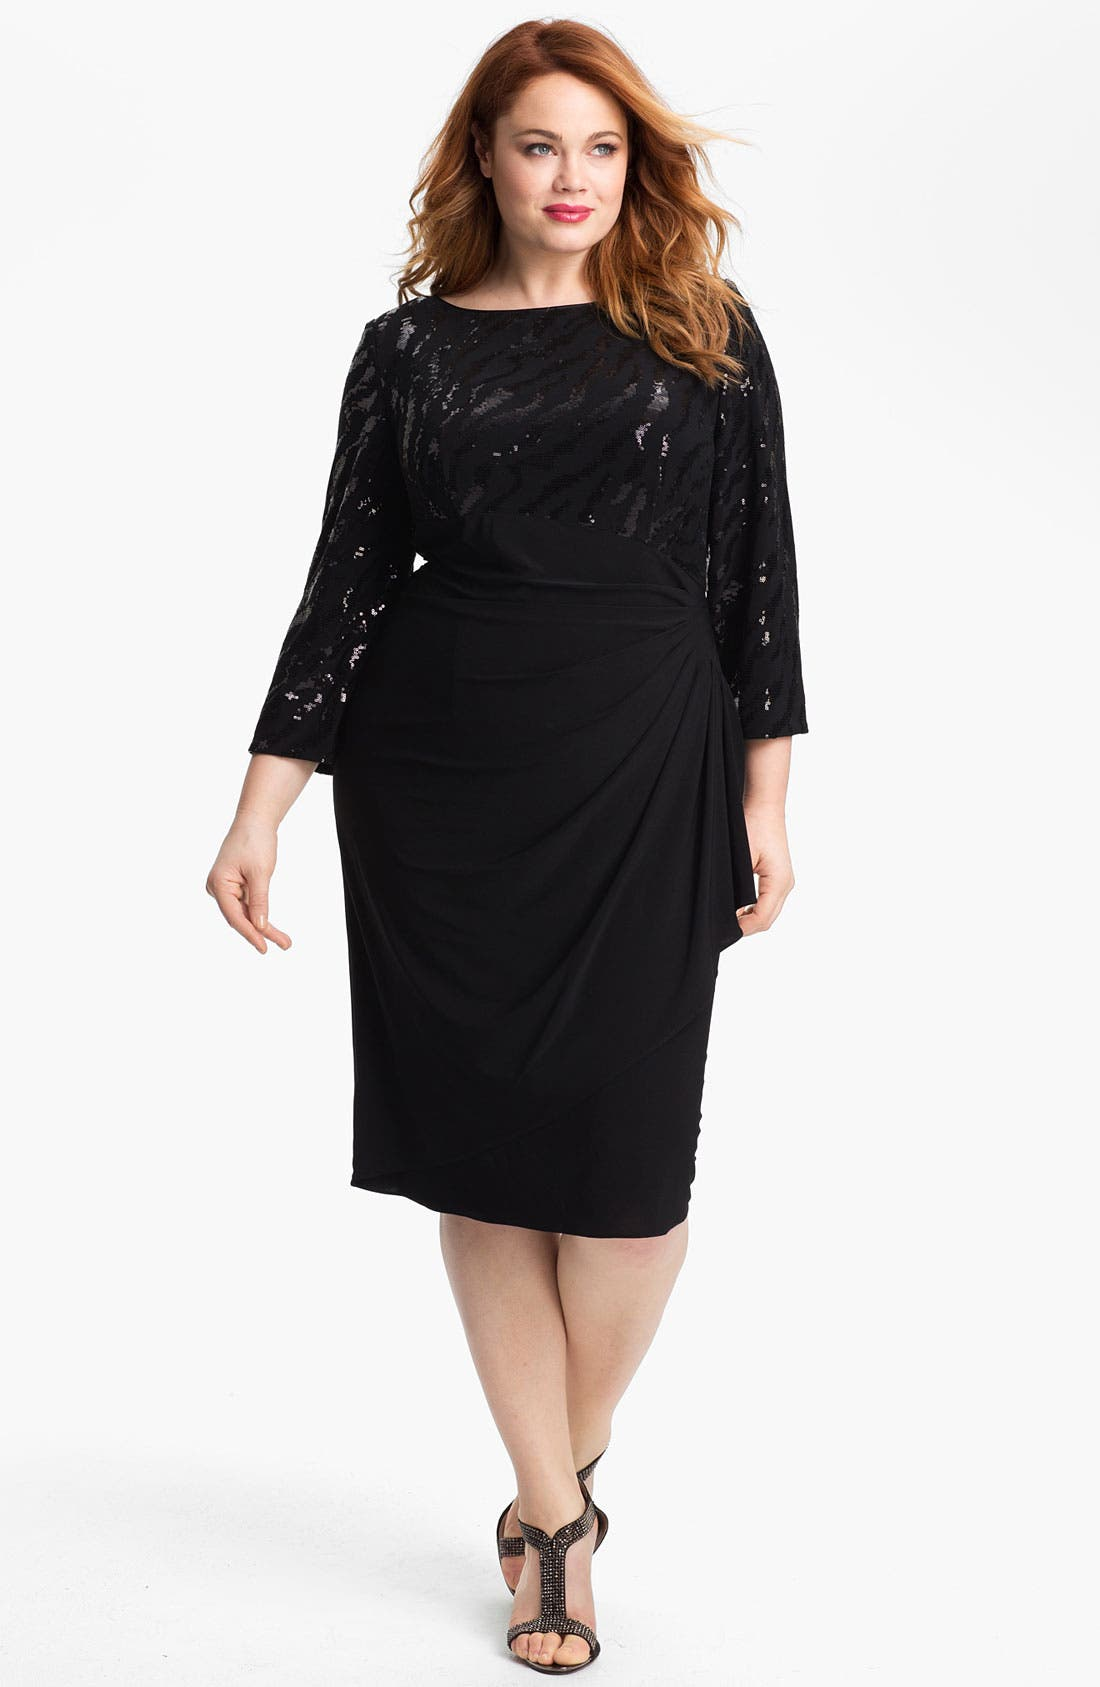 Alternate Image 1 Selected - Alex Evenings Embellished Ruched Jersey Dress (Plus)